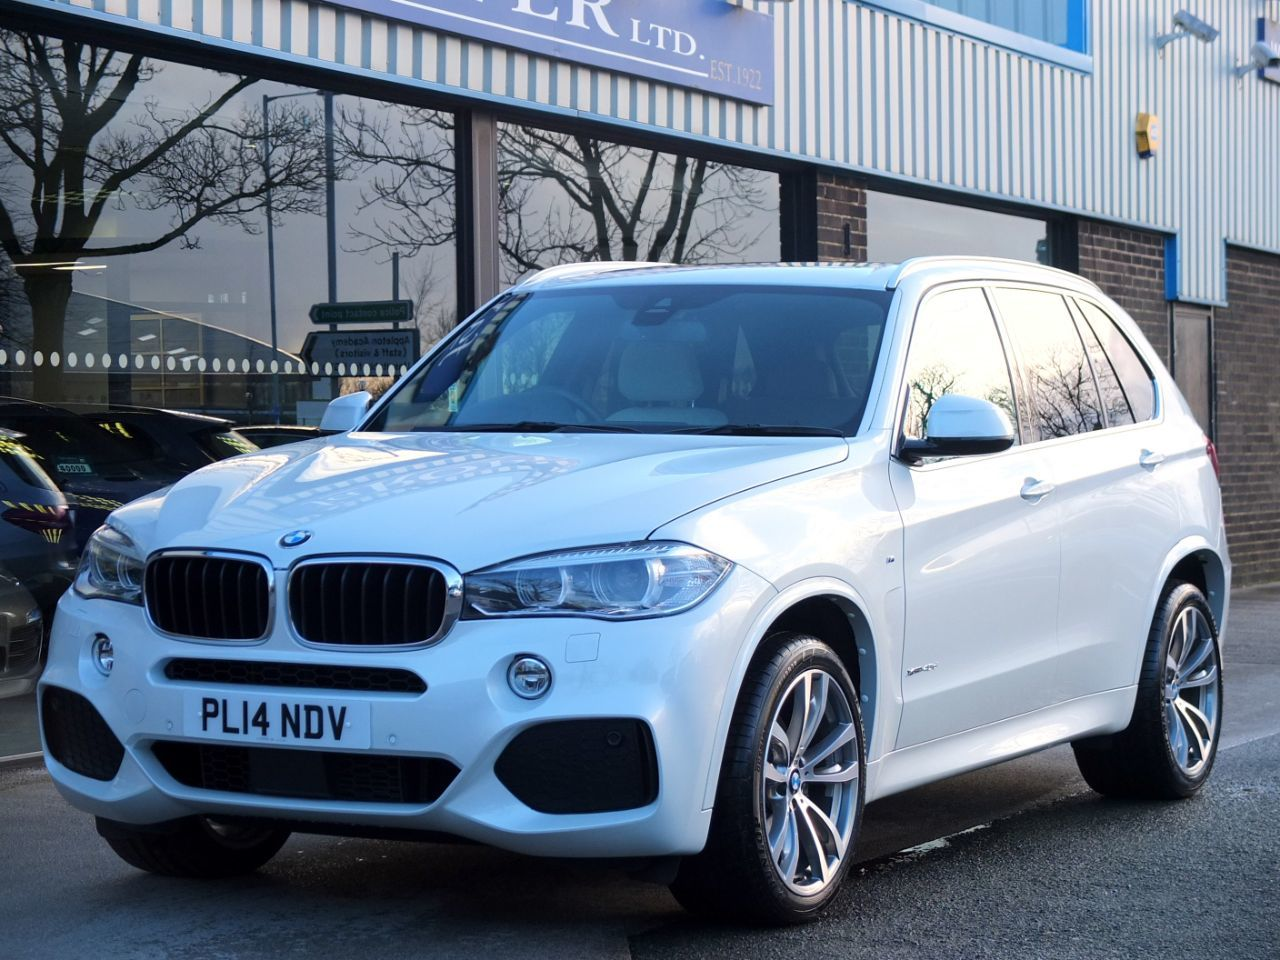 BMW X5 3.0 xDrive40d M Sport Auto Estate Diesel Mineral White MetallicBMW X5 3.0 xDrive40d M Sport Auto Estate Diesel Mineral White Metallic at fa Roper Ltd Bradford